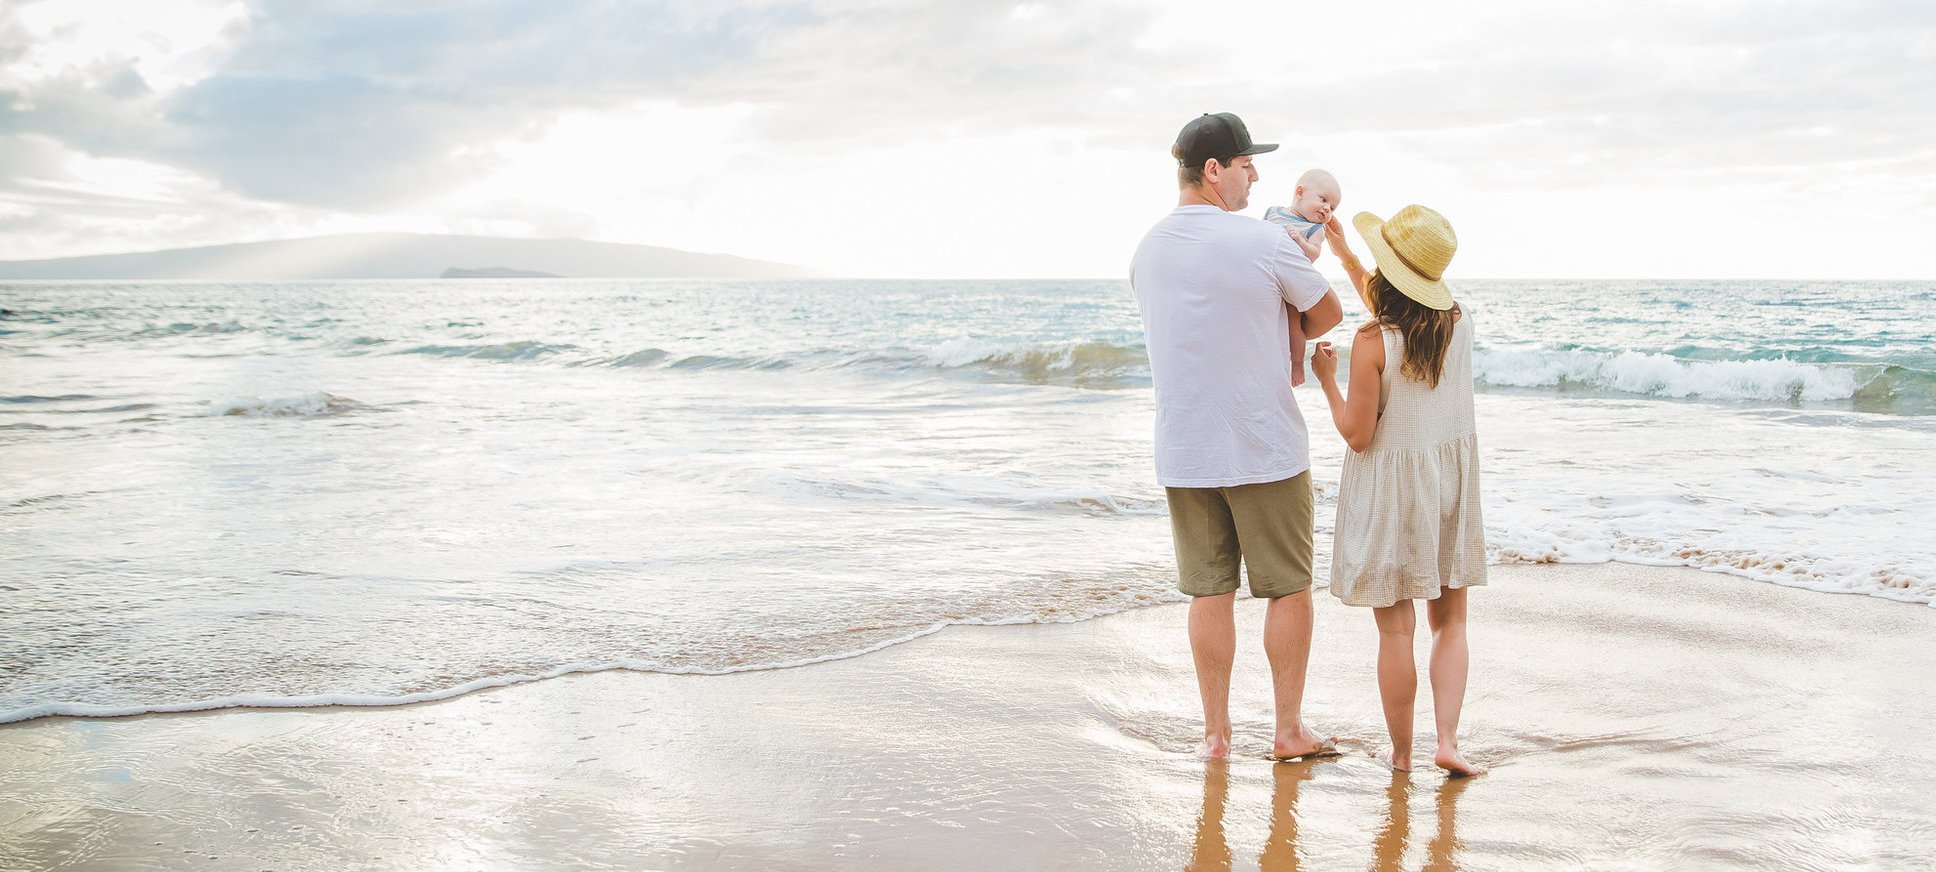 Jillian Harris, her husband and infant son at the beach together on a family photo shoot in Maui